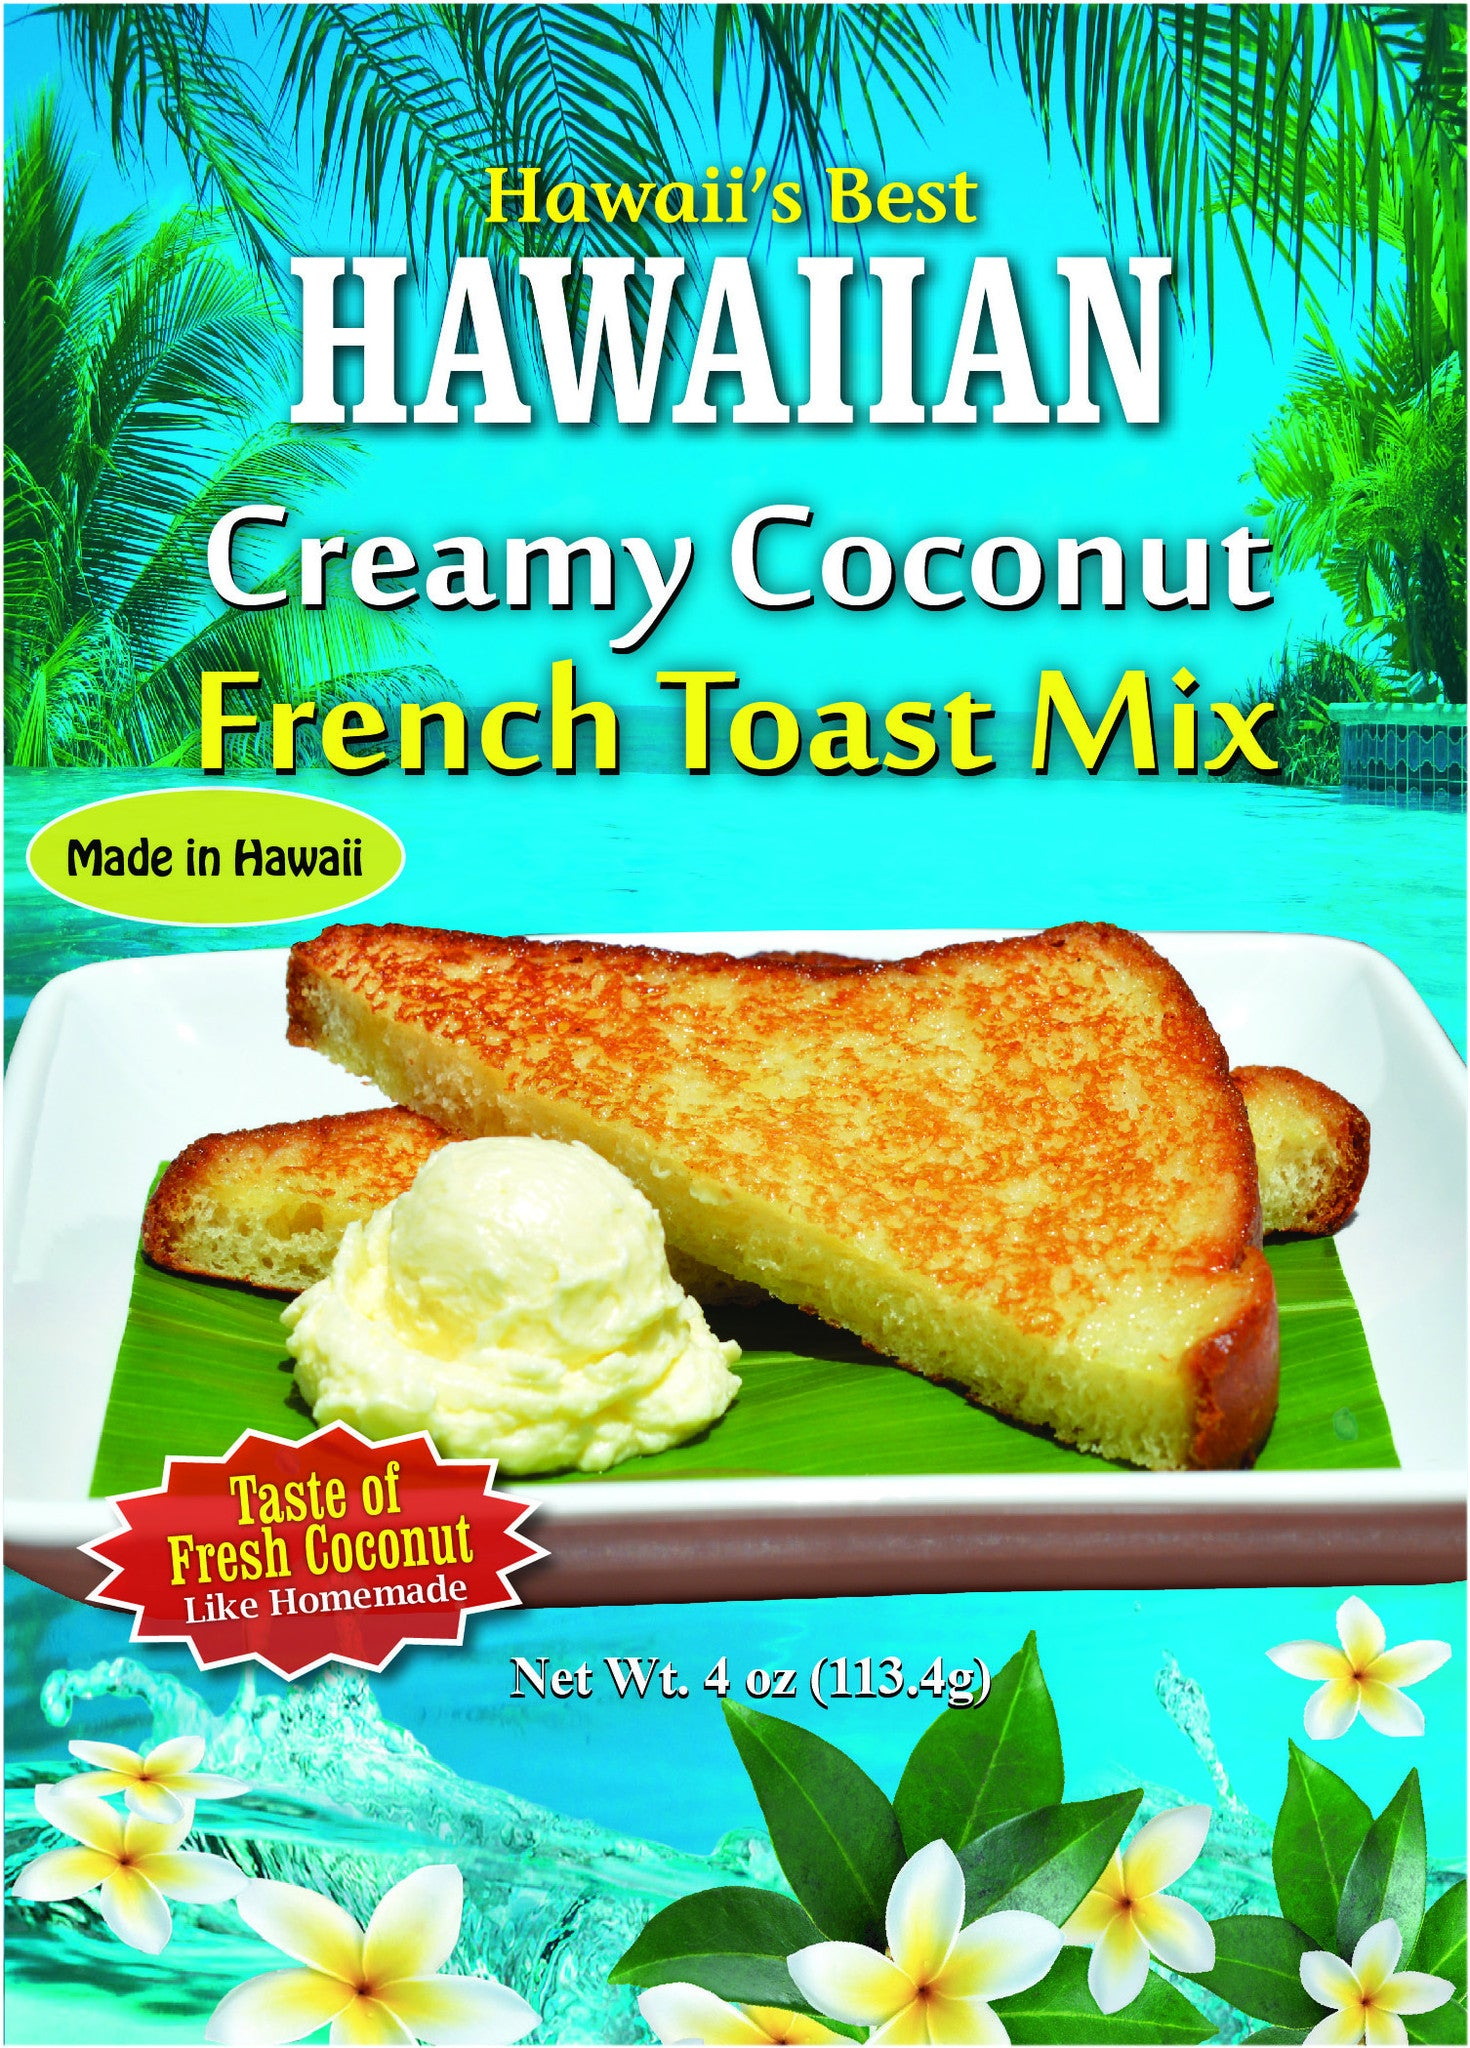 (1 BAG) CREAMY COCONUT FRENCH TOAST MIX (4 oz package), Makes approx 12 slices of french toast